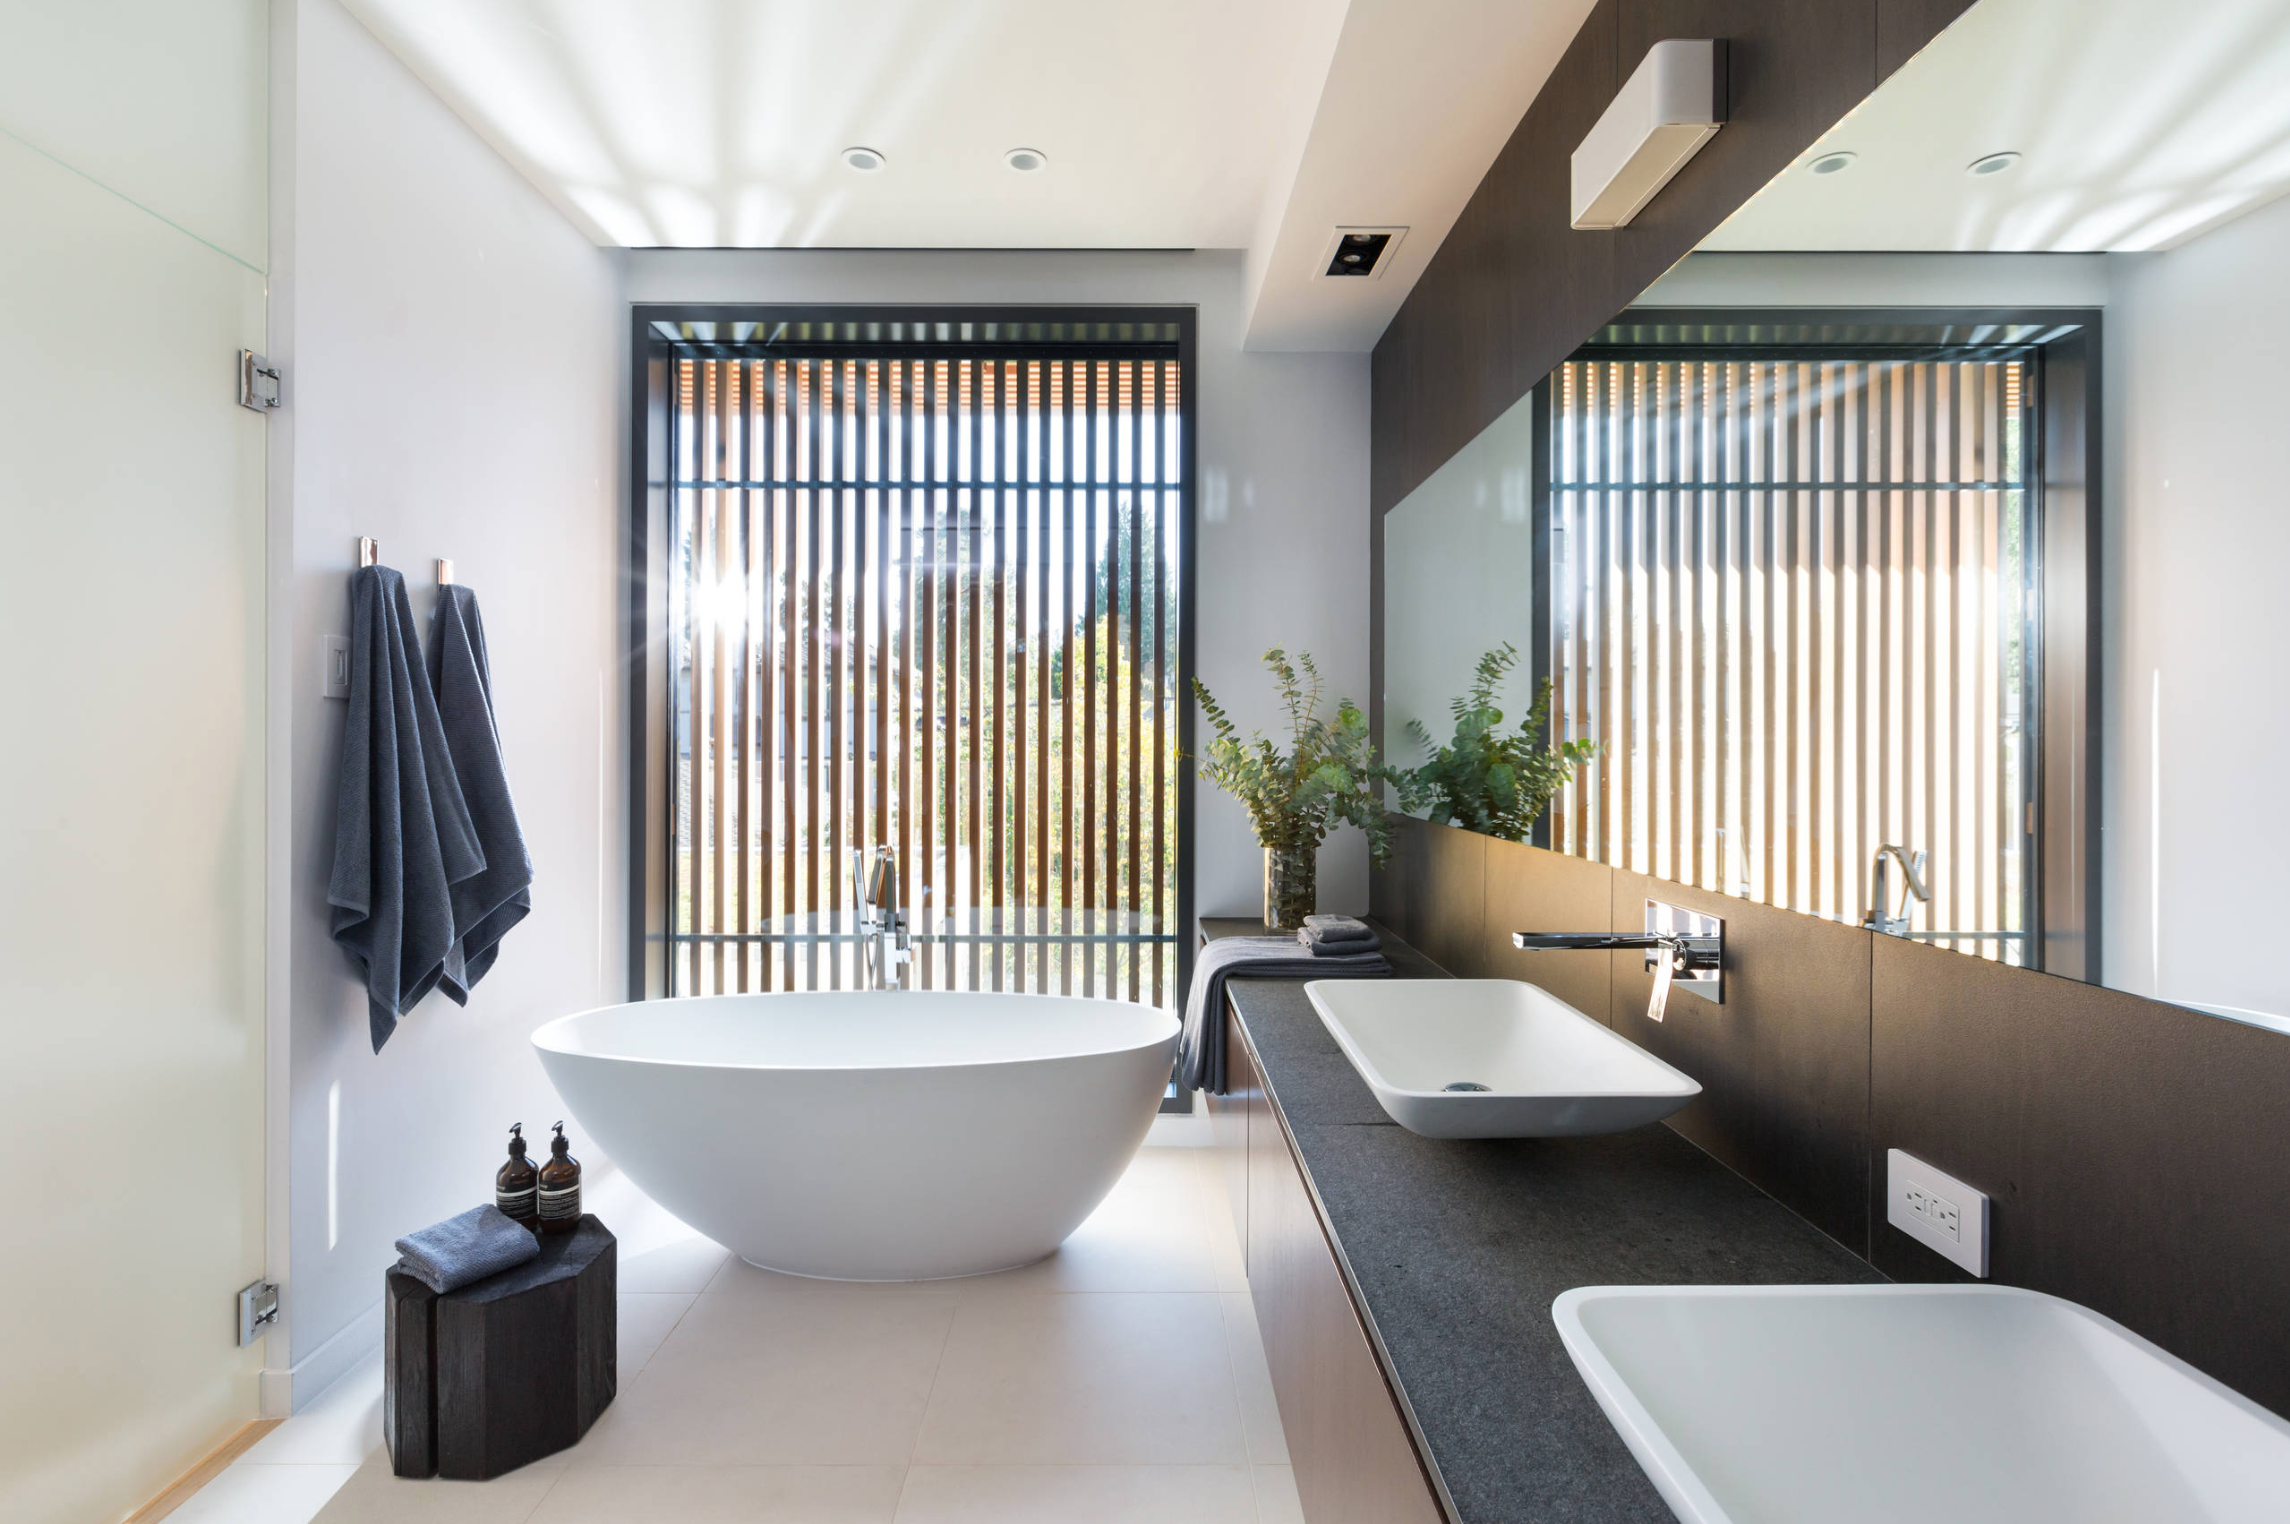 Natural bathroom design filled with natural light. A vertical wall panelling adds privacy